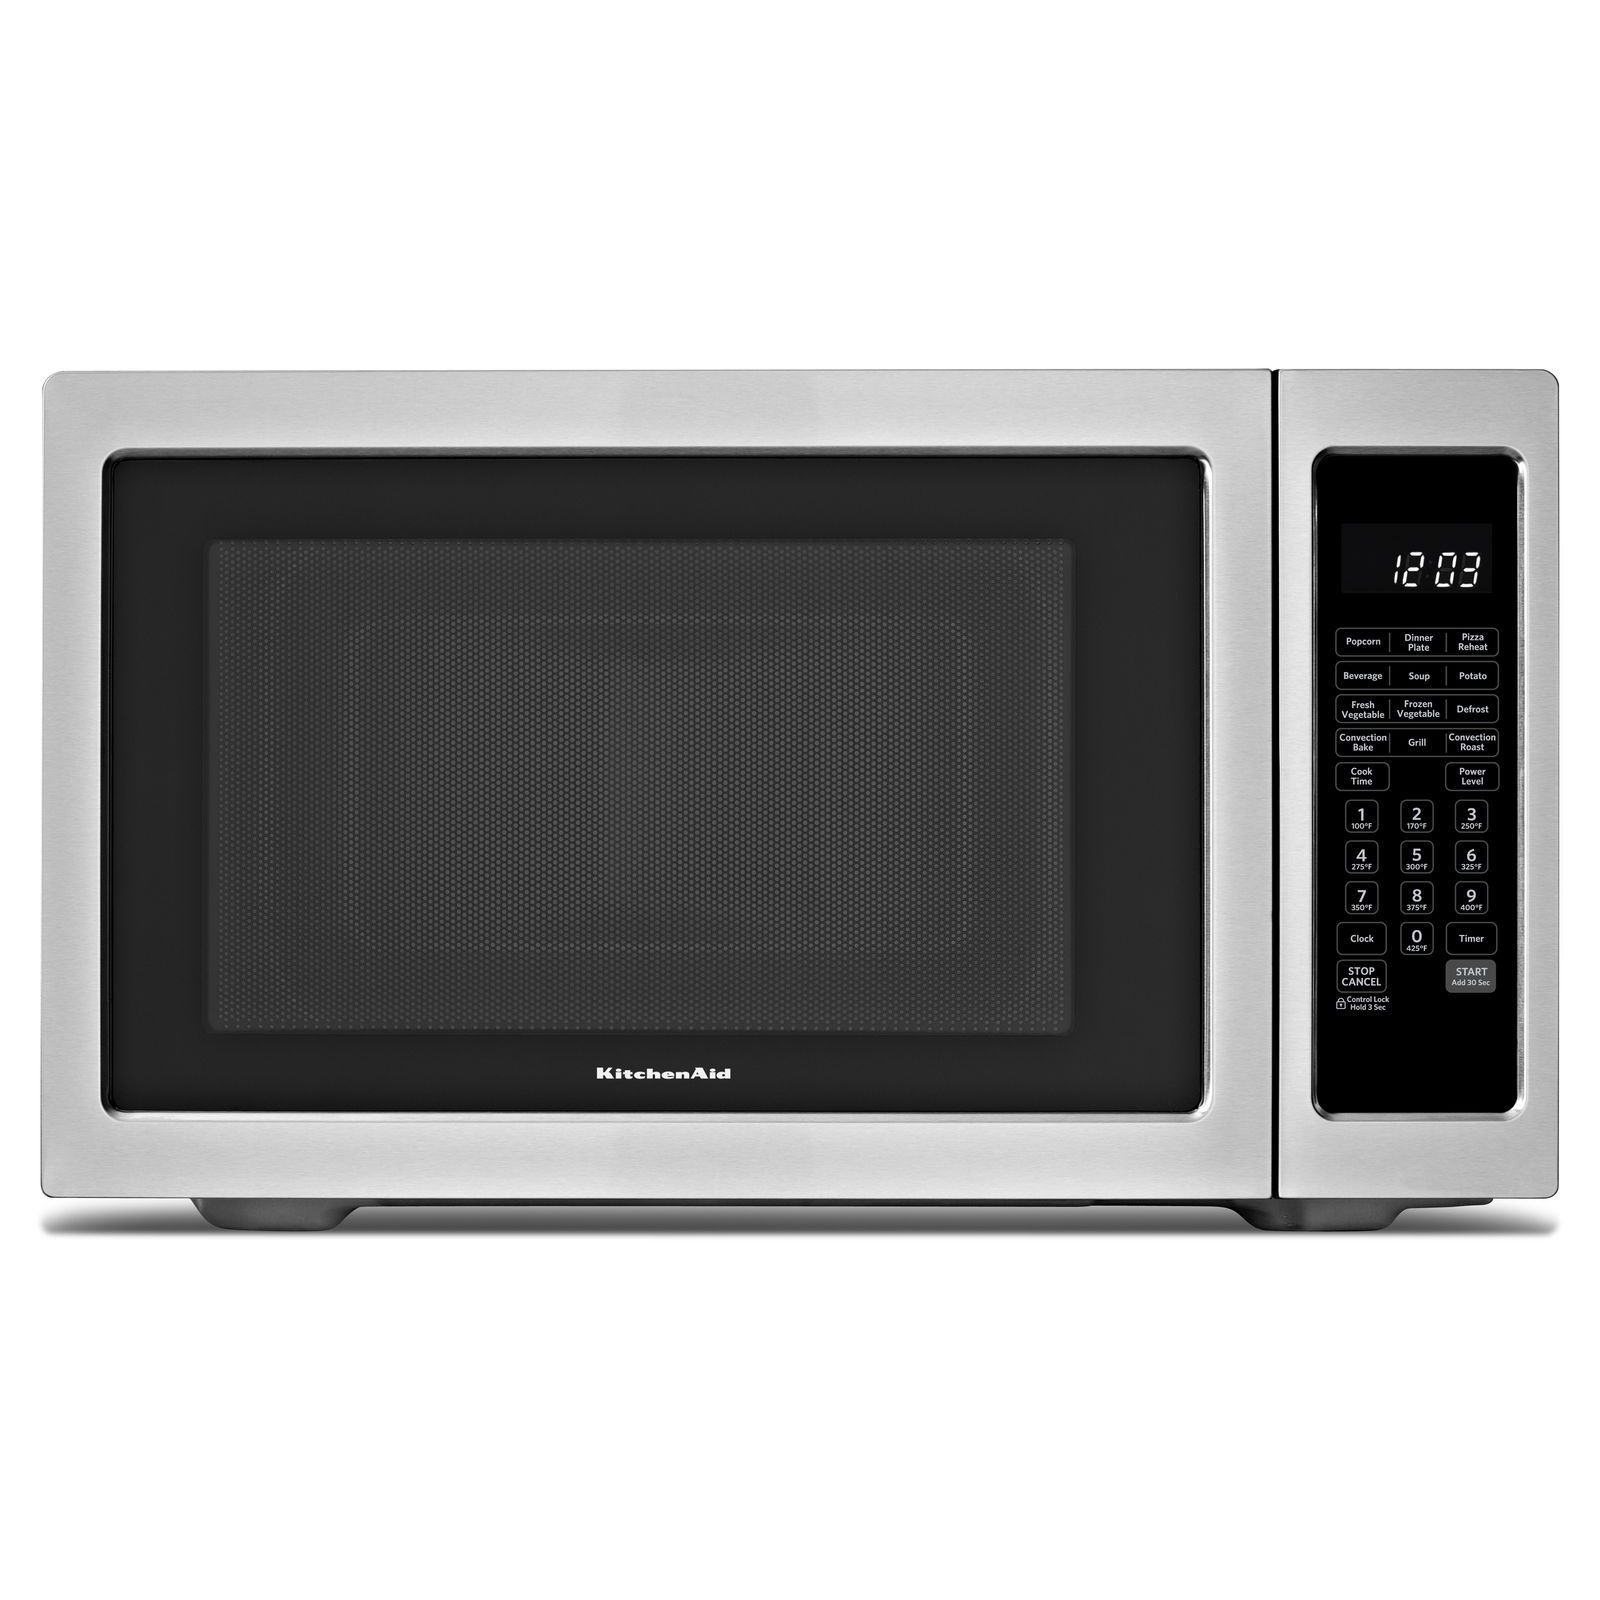 Small Countertop Microwaves Kitchenaid 1200watt Countertop Convection Microwave Oven